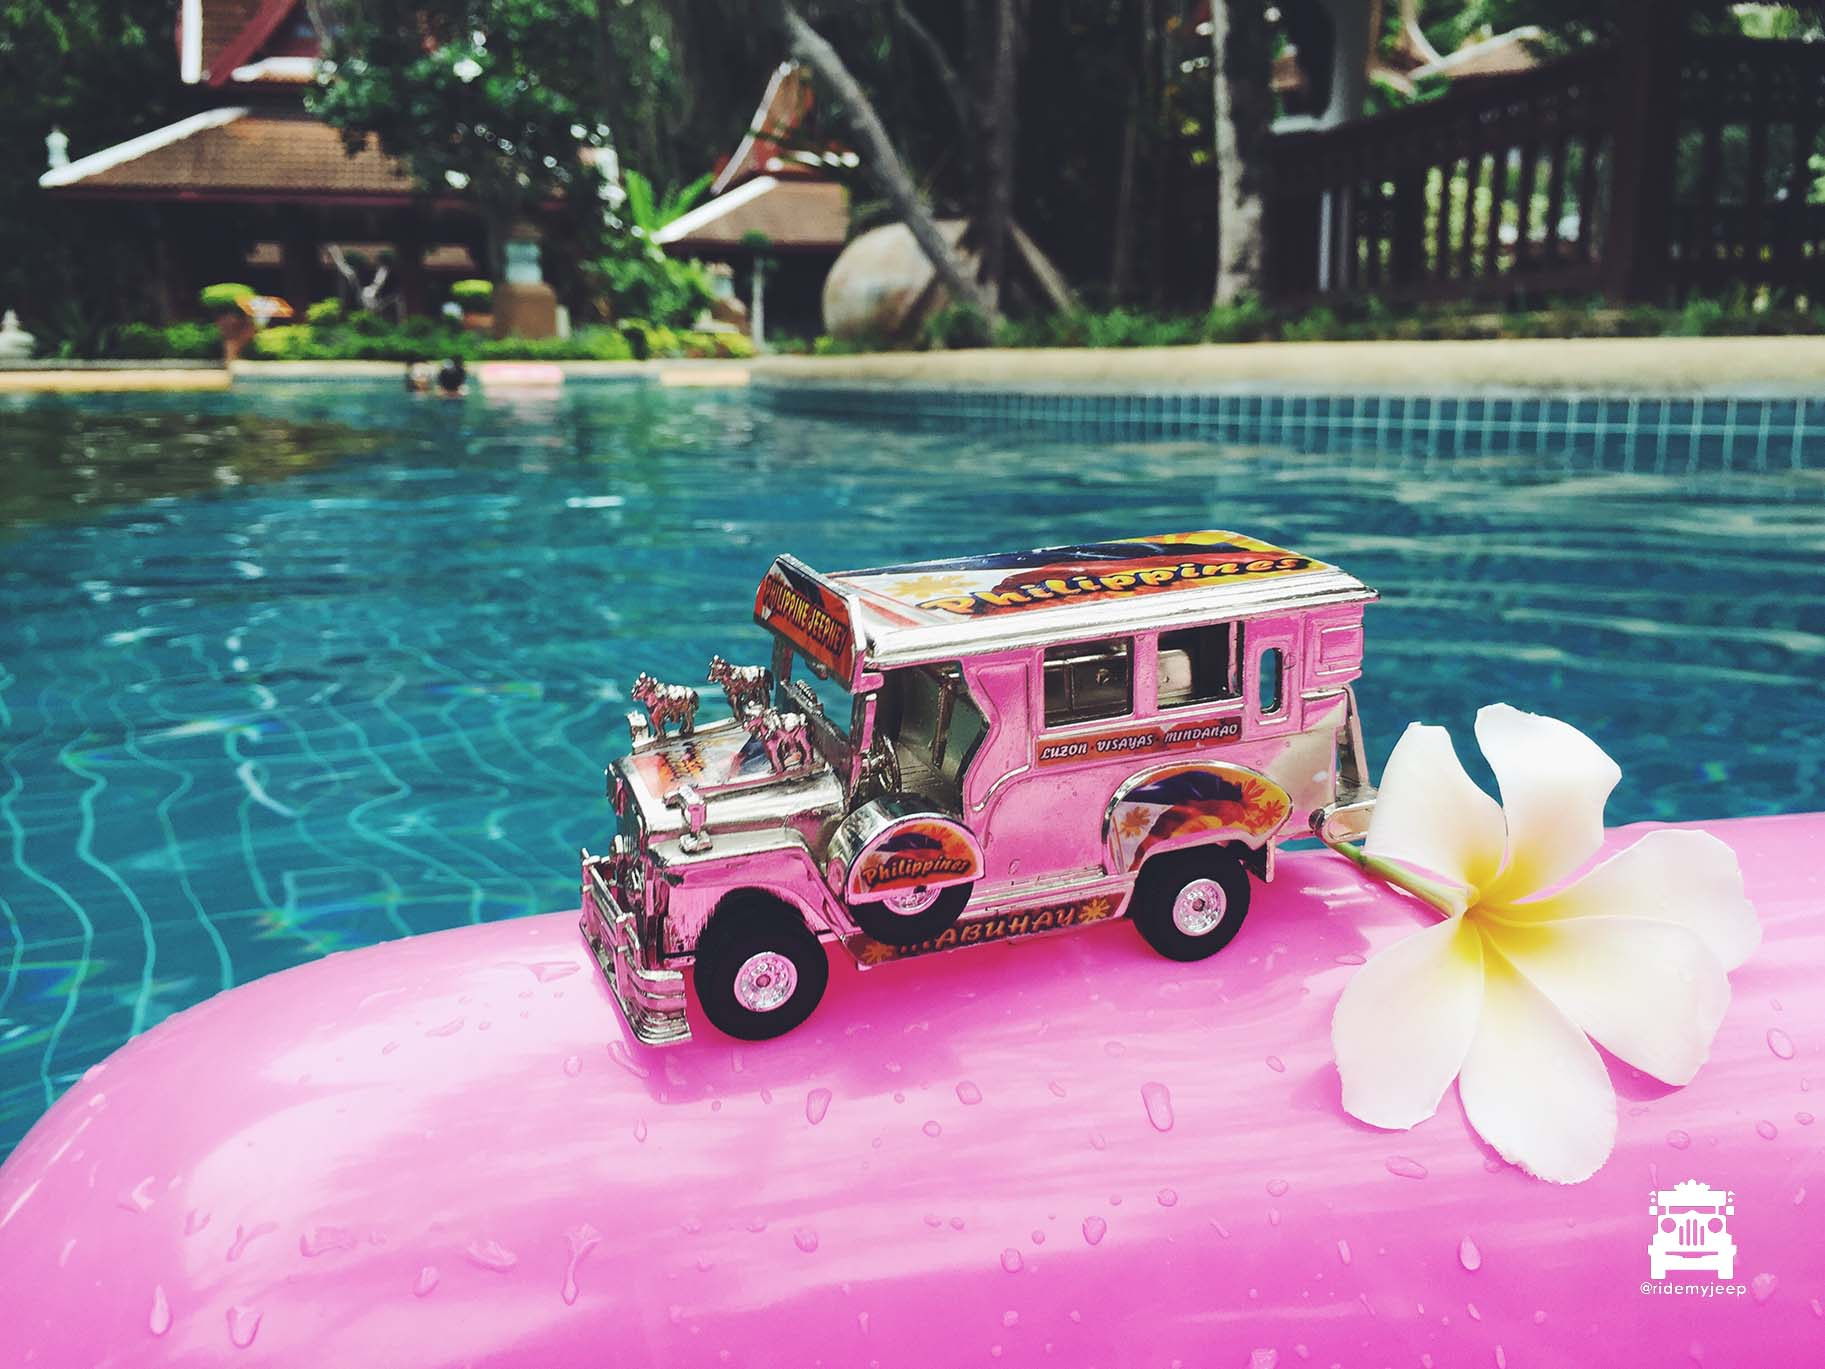 Jeep by the pool side